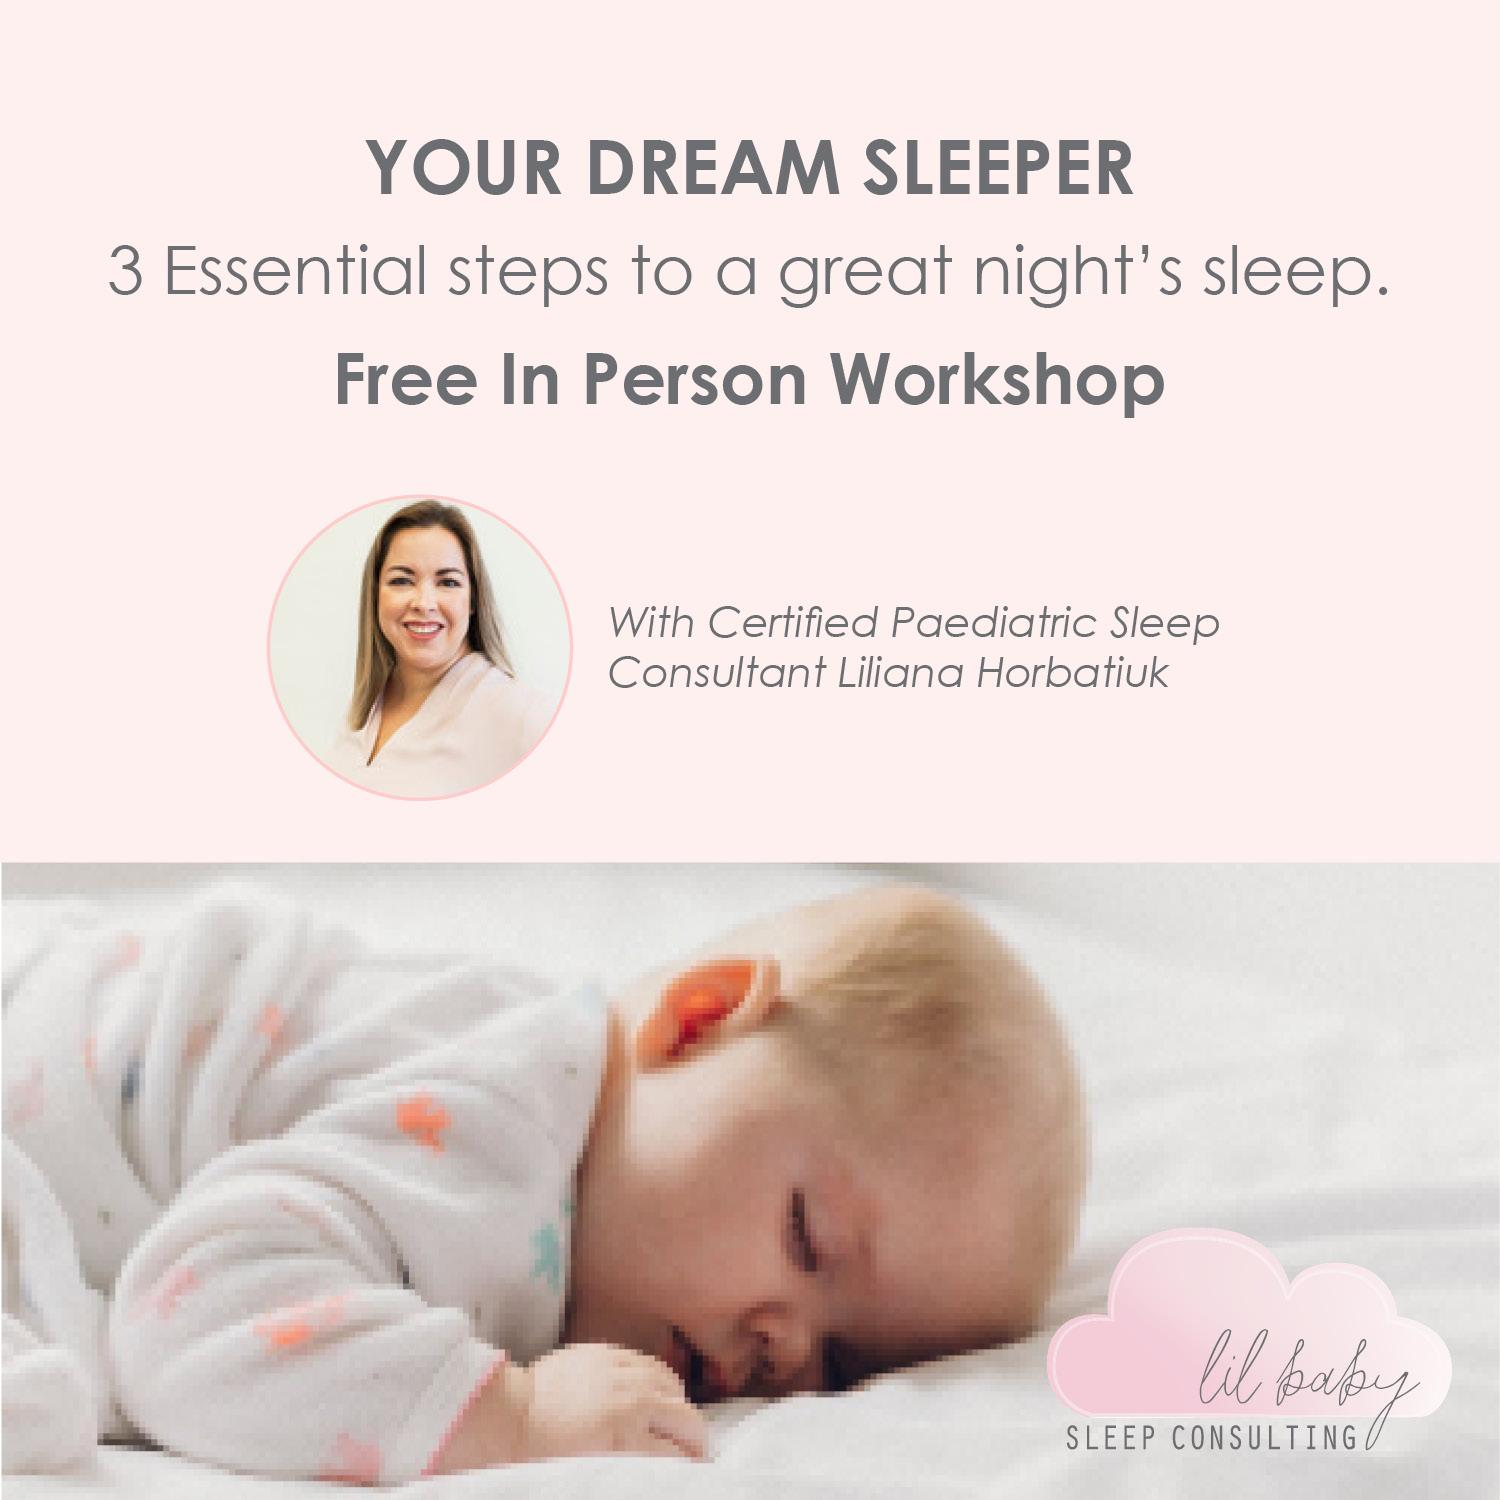 Your Dream Sleeper - 3 Essential Steps To A Great Night Sleep (0-12 months)